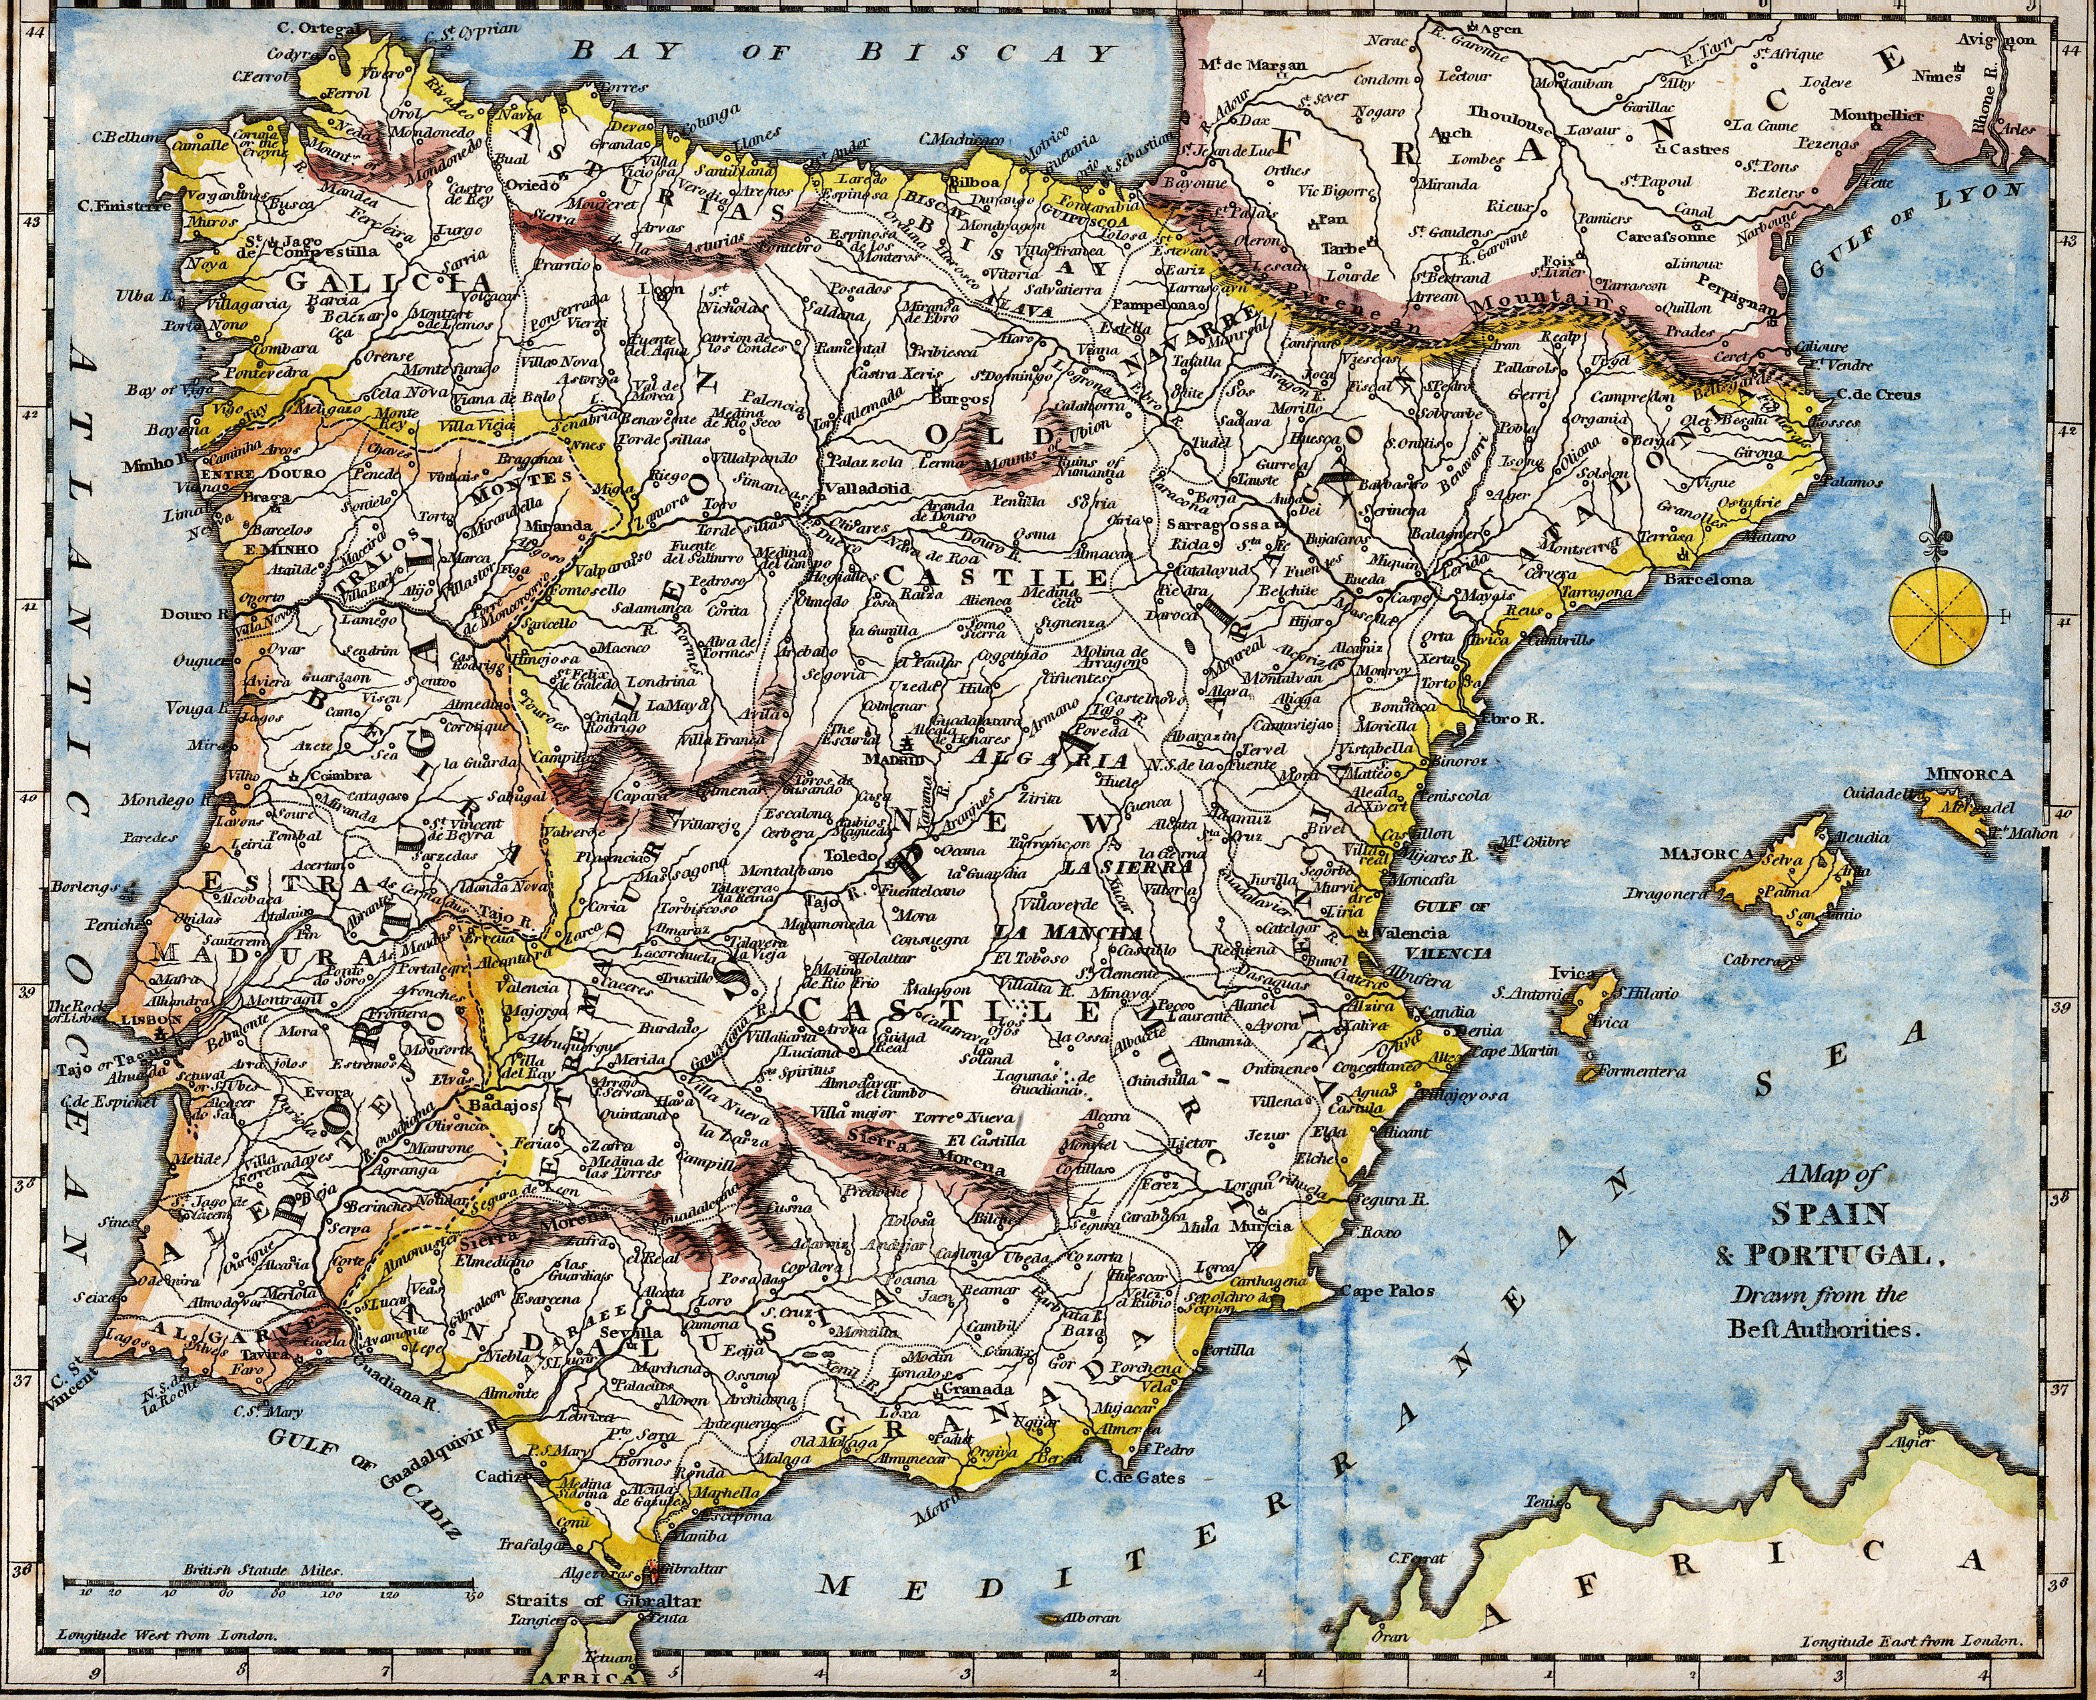 FileIberian Peninsula Antique Mapjpg Wikipedia - Portugal map wikipedia